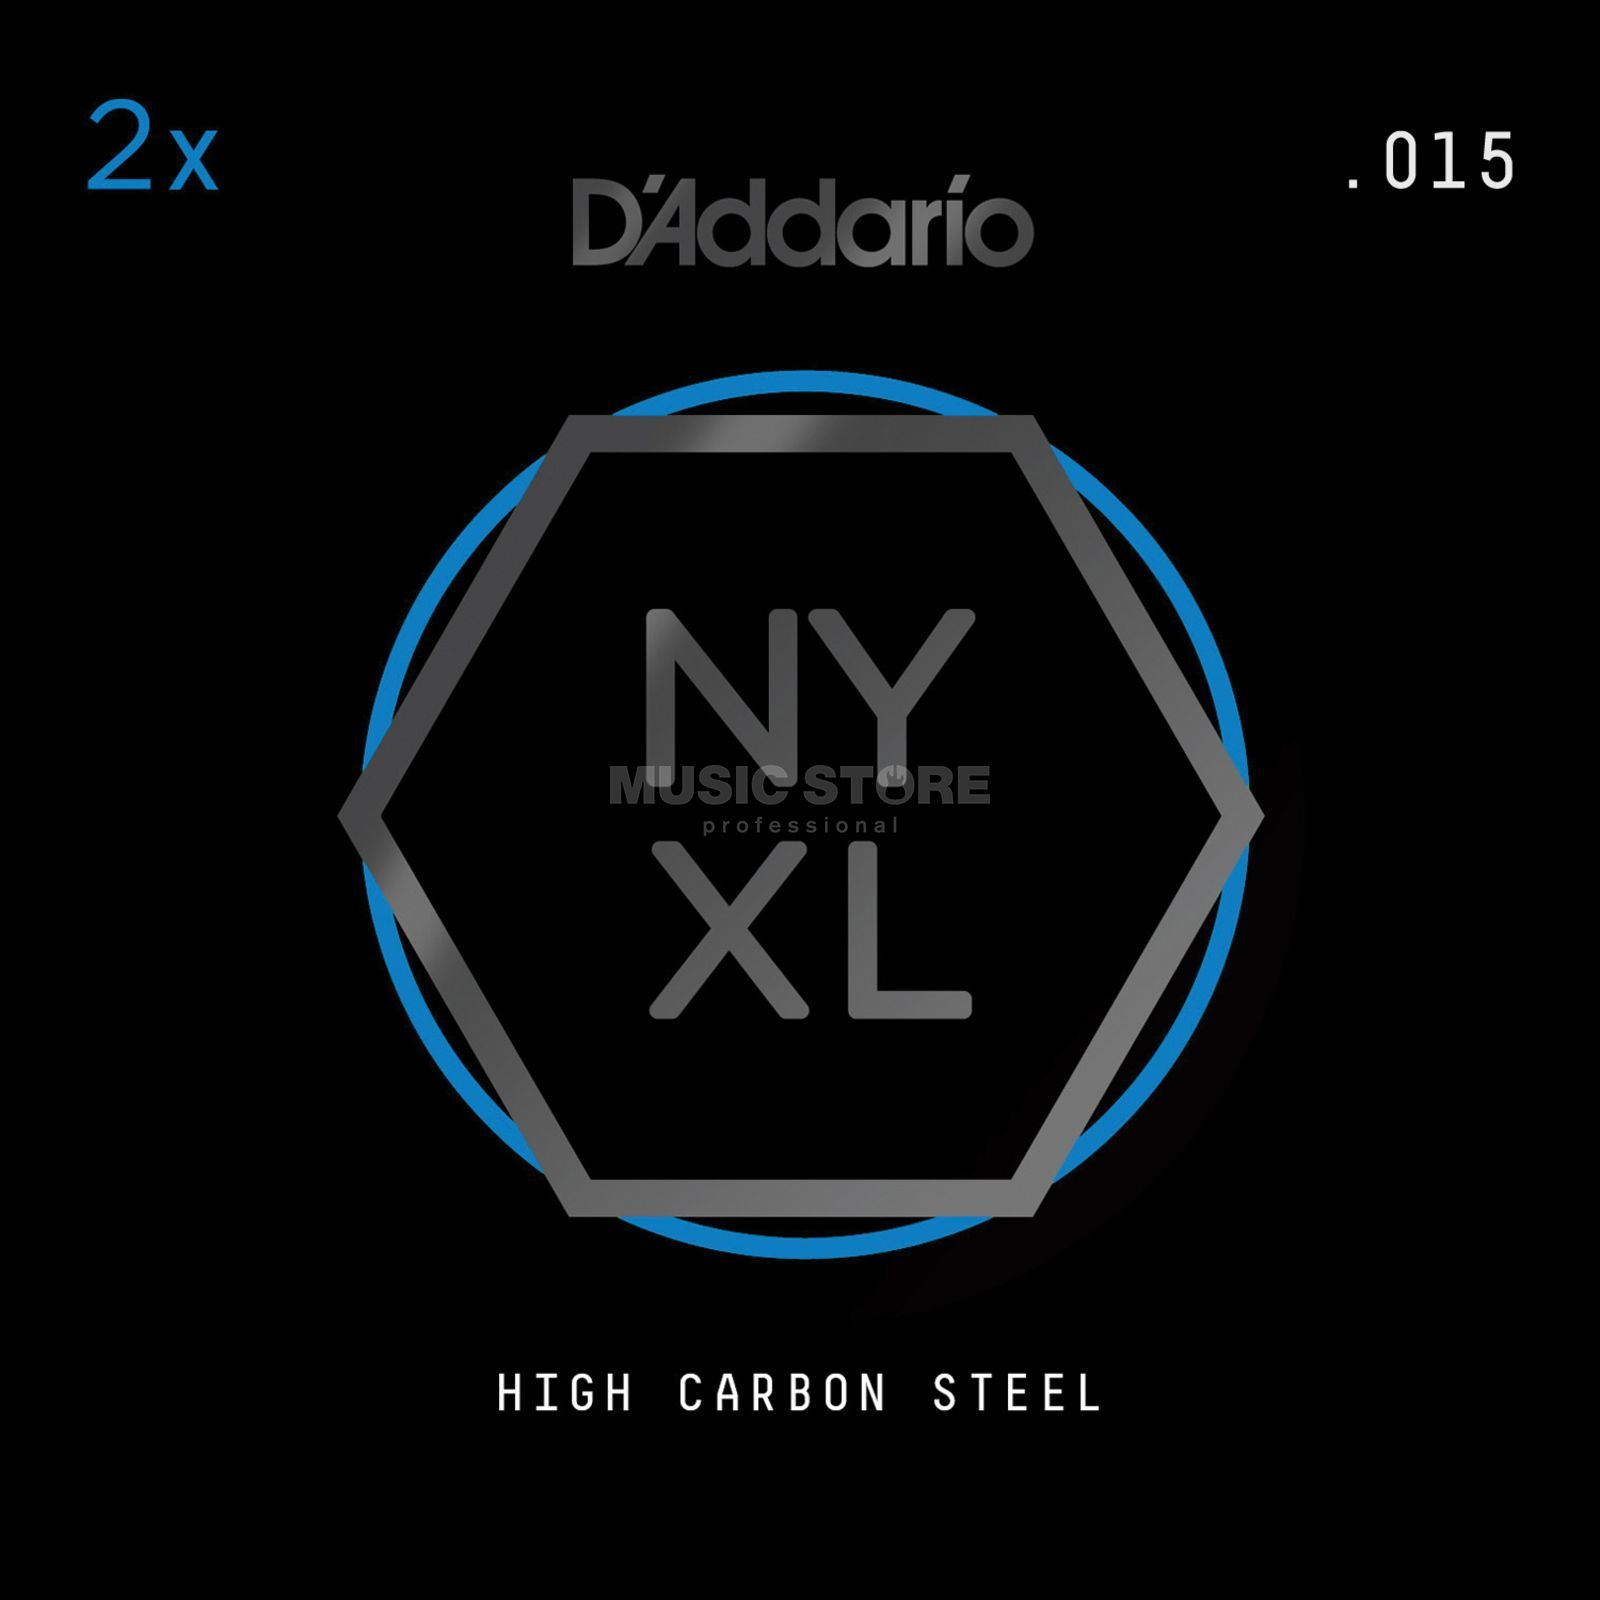 D'Addario NYPL015 Plain Single String 2-Pack - High Carbon Steel Image du produit